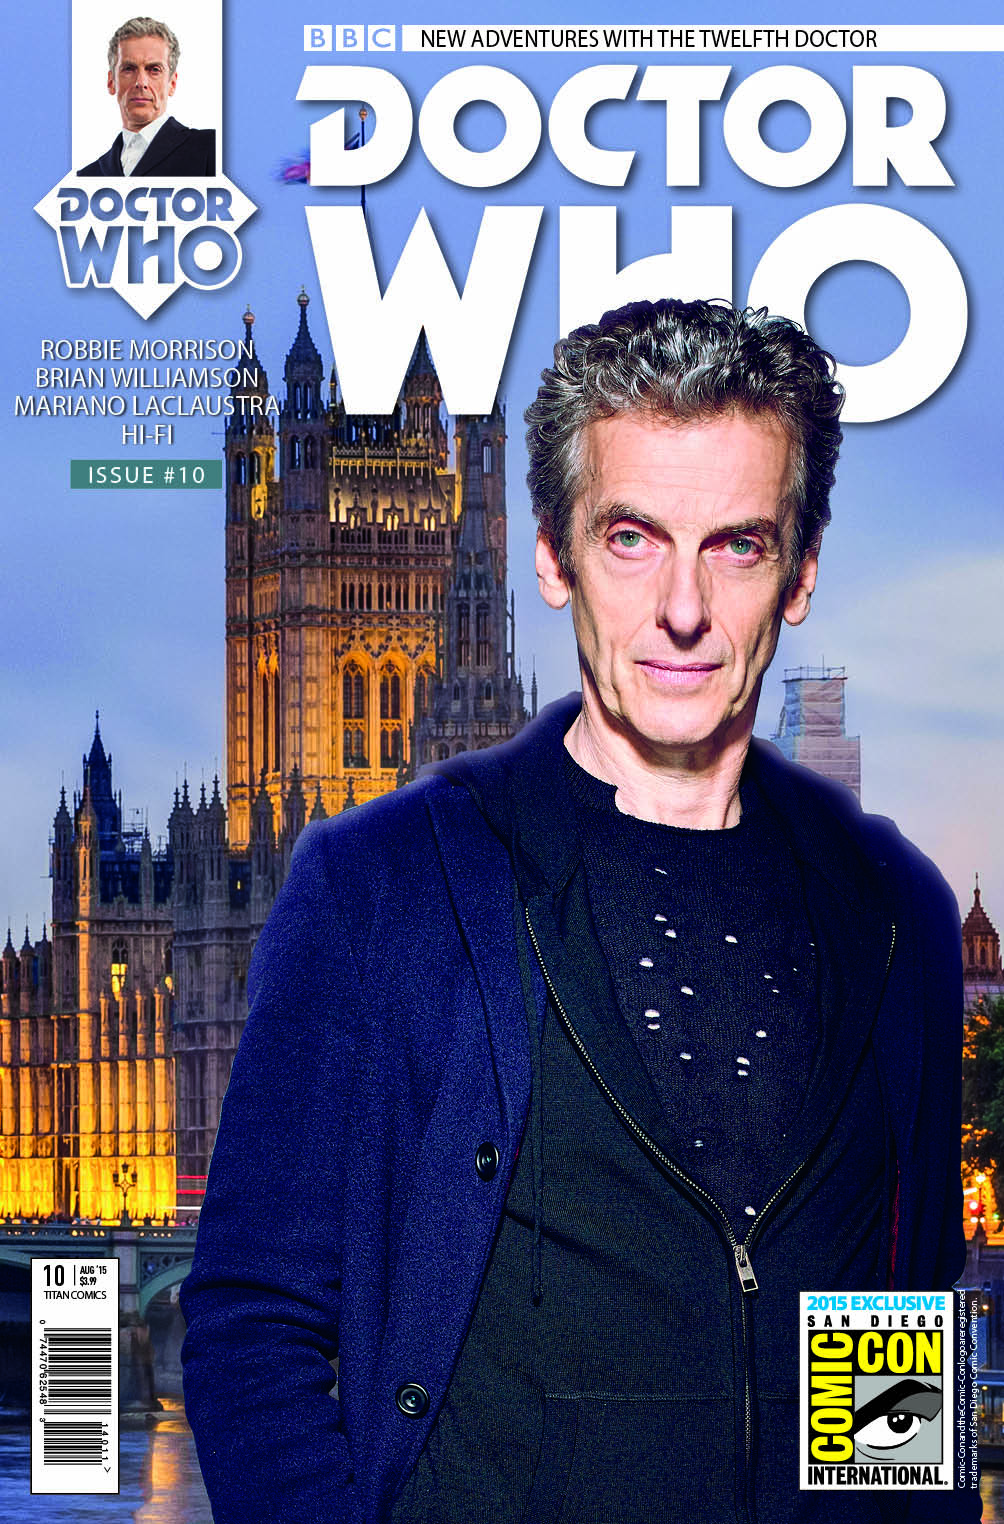 Doctor Who: Twelfth Doctor #11 (SDCC Exclusive Cover) (Credit: Titan Comics)